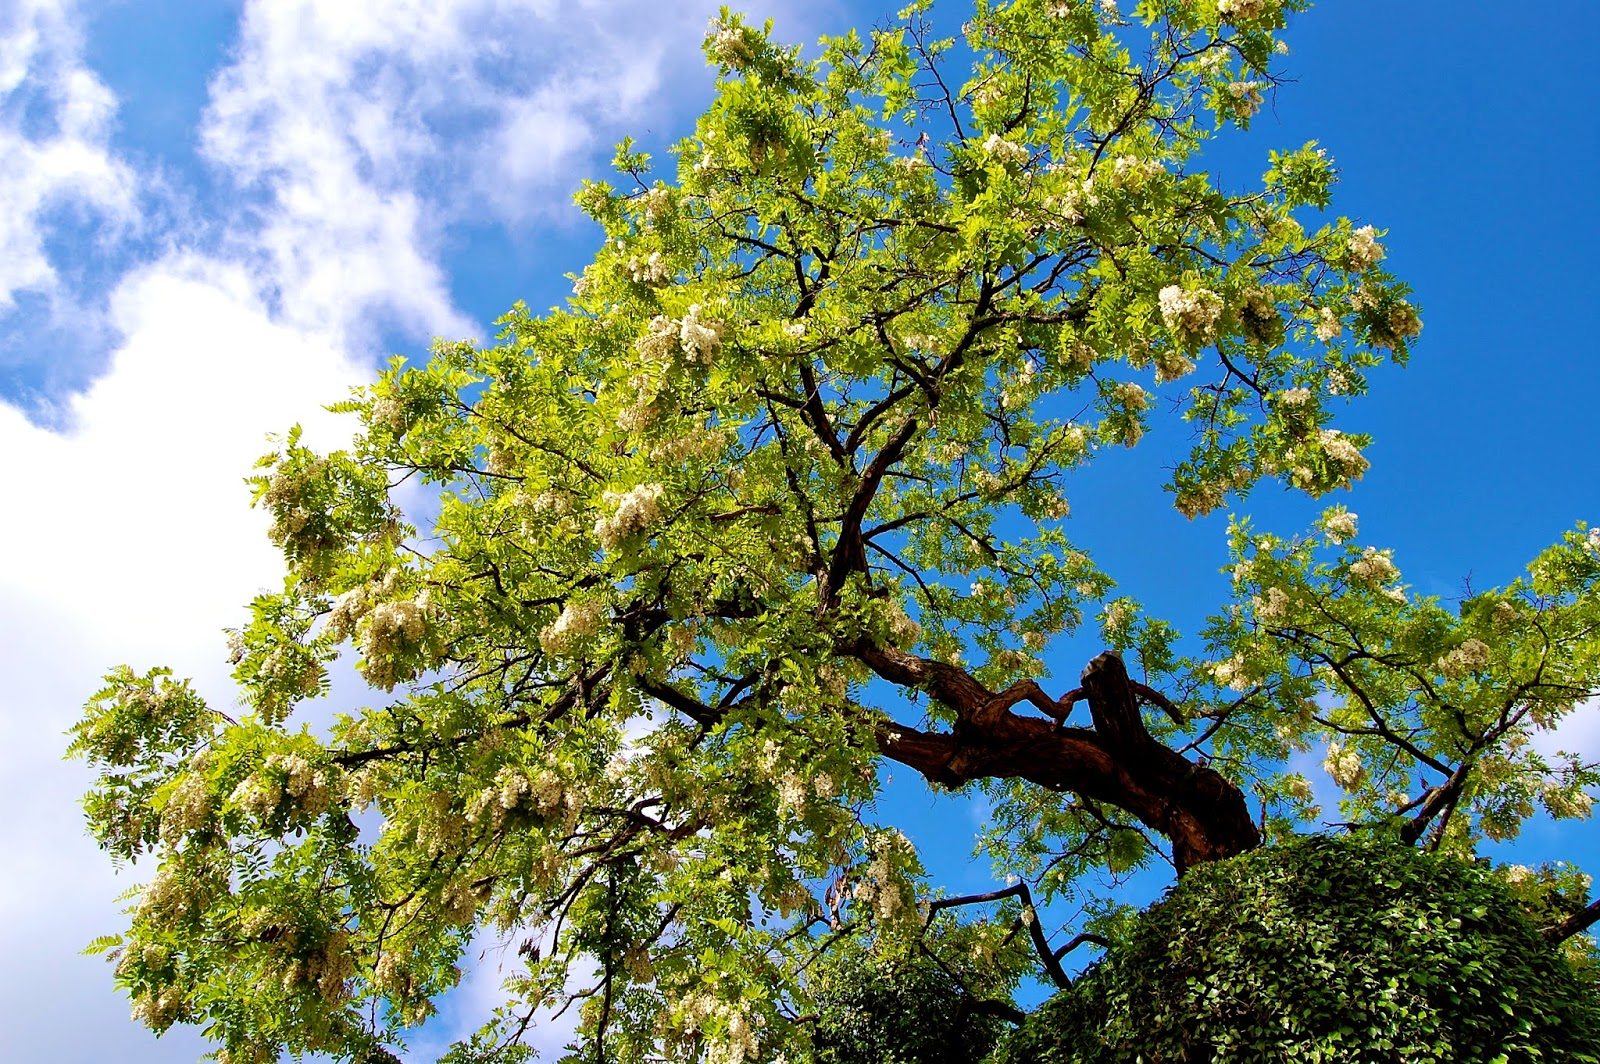 The oldest tree in Paris (Robinia pseudoacacia) still flowers after 400 years